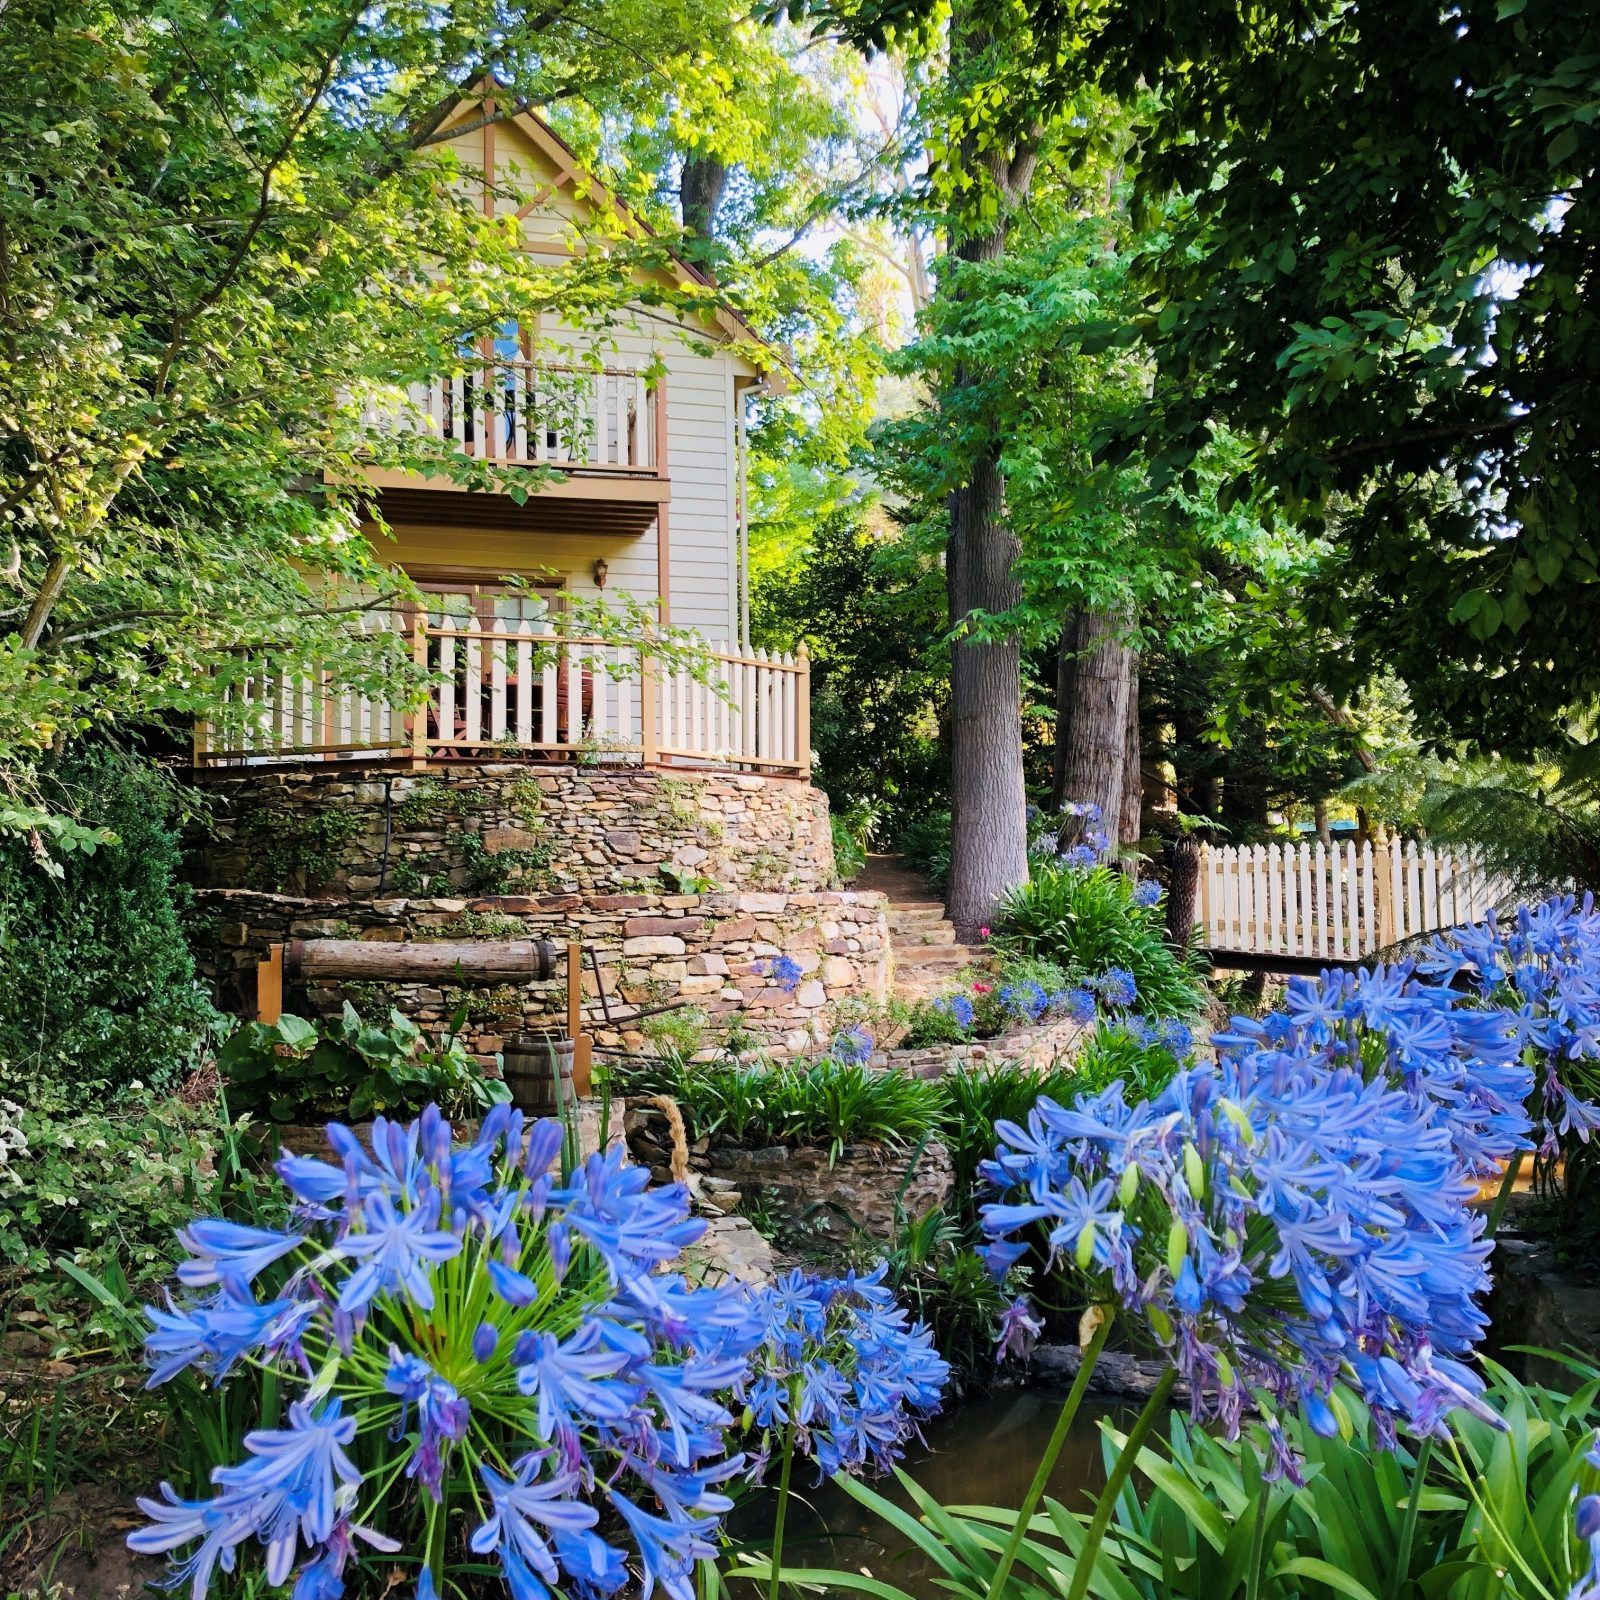 The garden is constantly changing and provides a very relaxing place to enjoy the Adelaide Hills